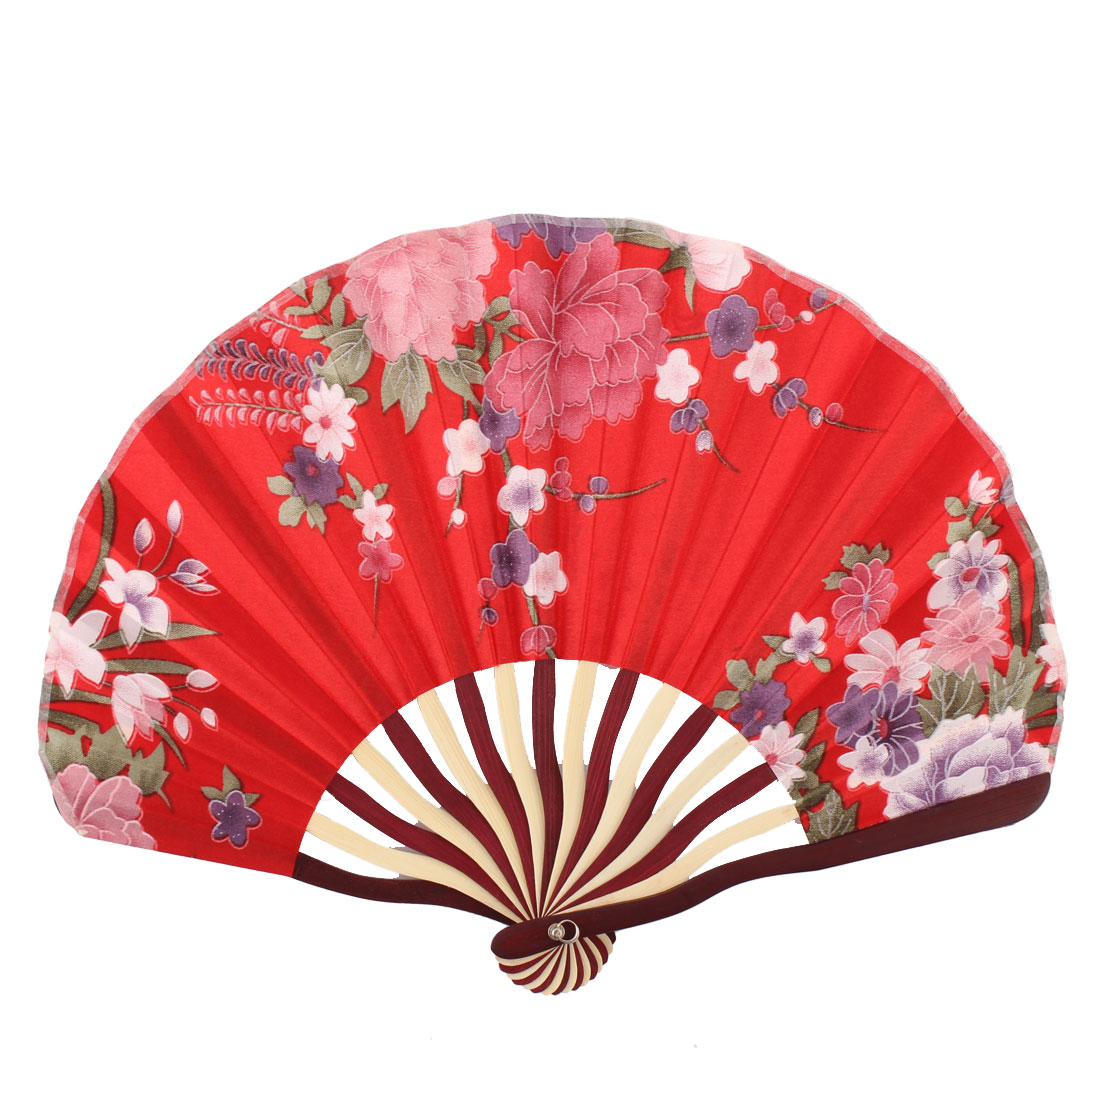 Lady Bamboo Frame Flower Pattern Dancing Wedding Party Folding Hand Fan Red